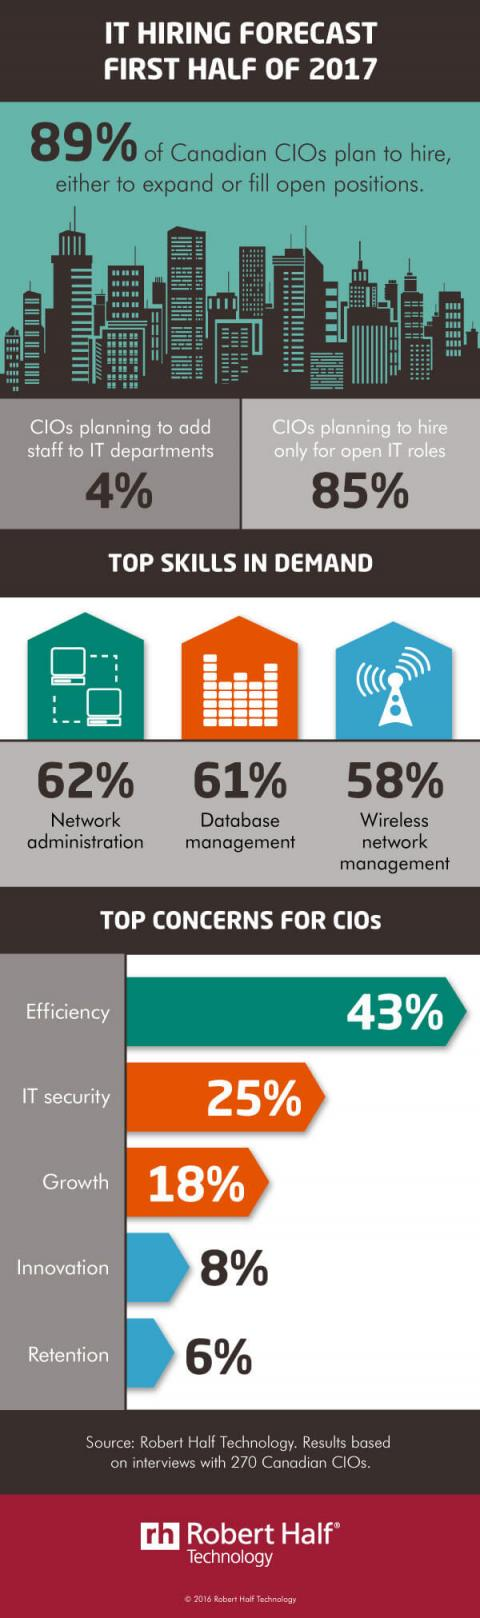 An infographic summarizing hiring plans of CIOs for the first half of 2017